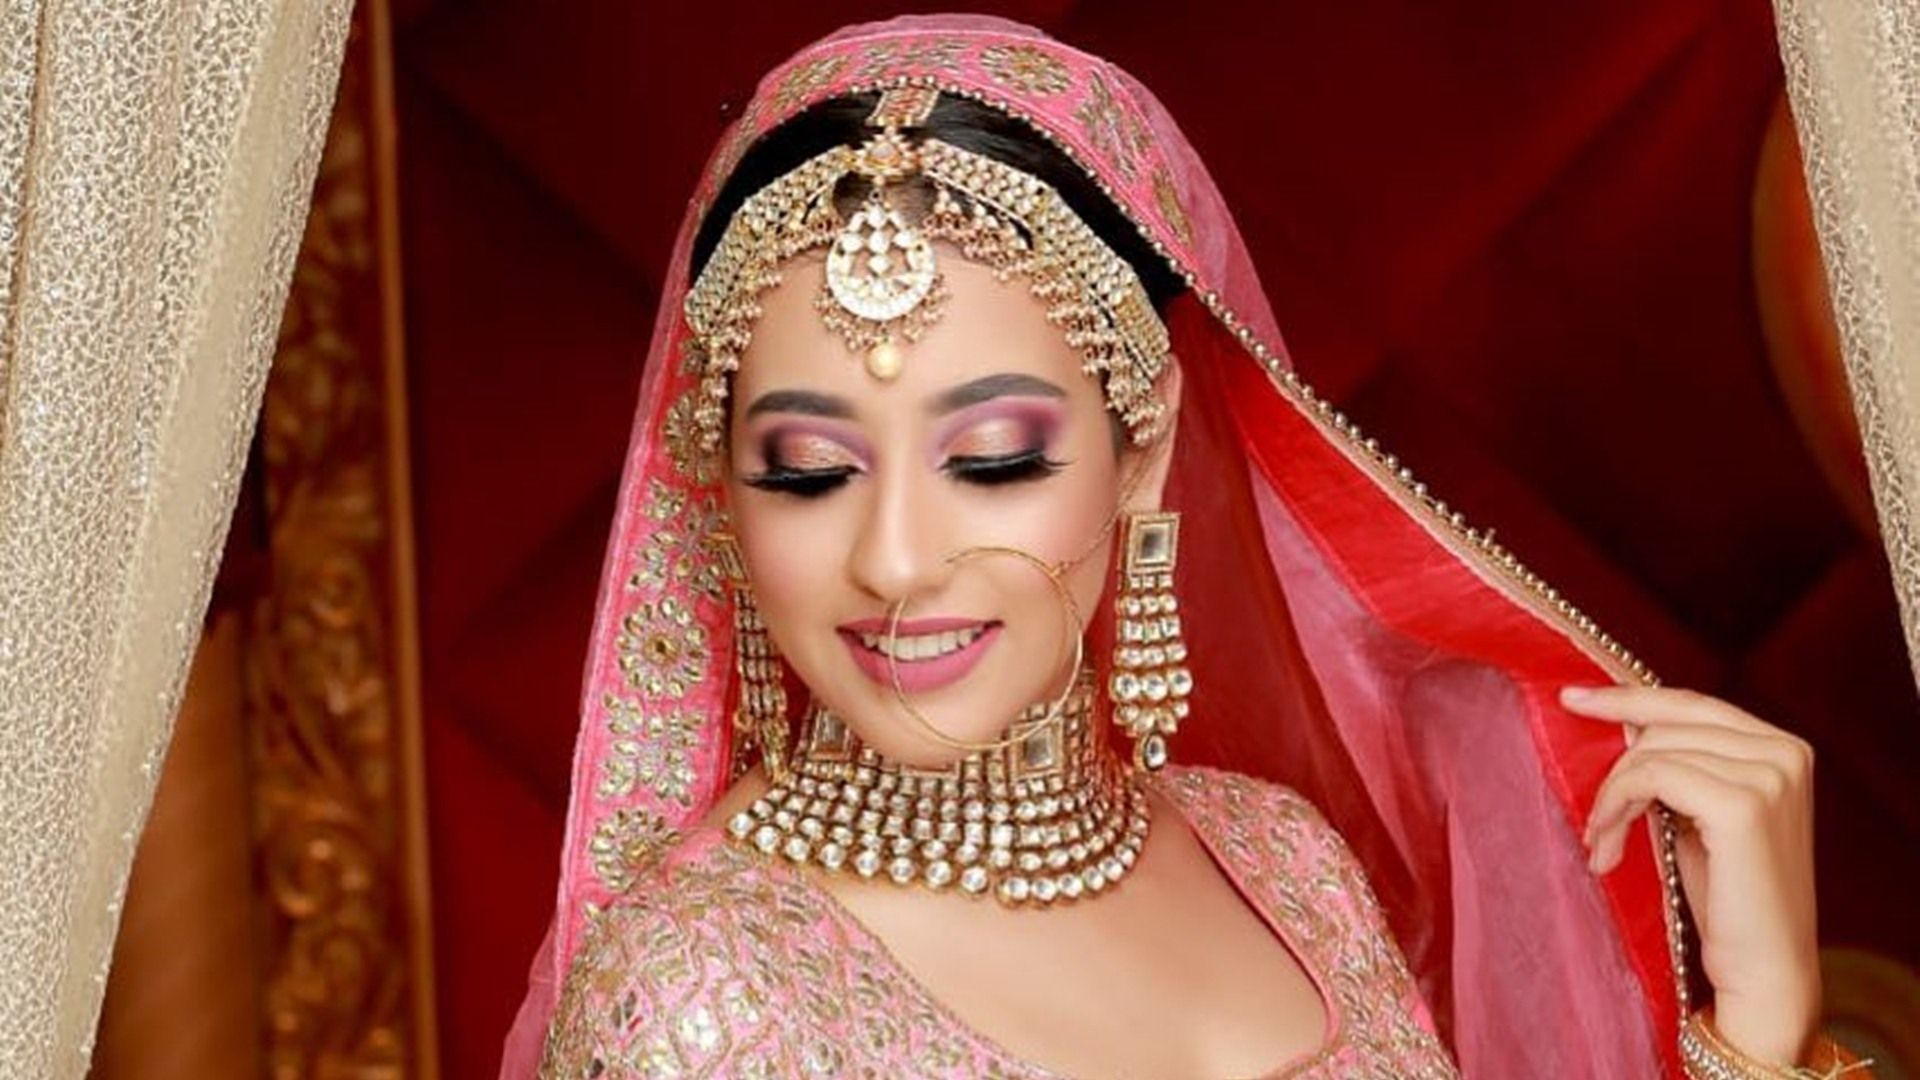 Indian Bride Wallpapers Top Free Indian Bride Backgrounds Wallpaperaccess